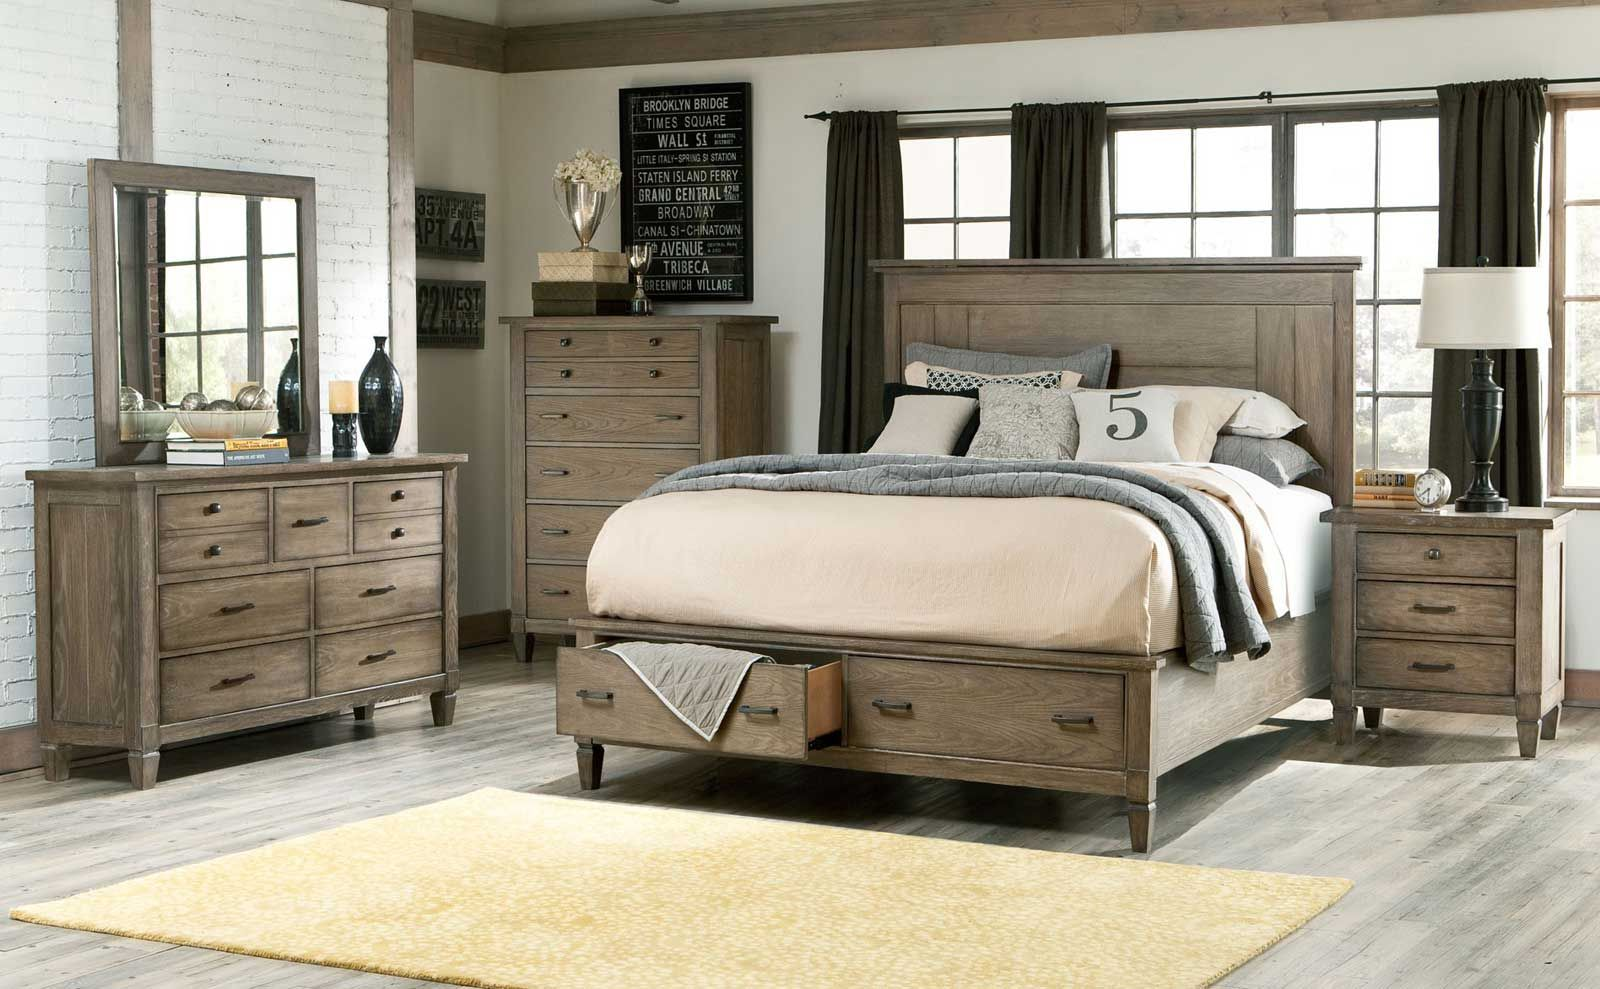 Best 25 King bedroom furniture sets ideas on Pinterest King